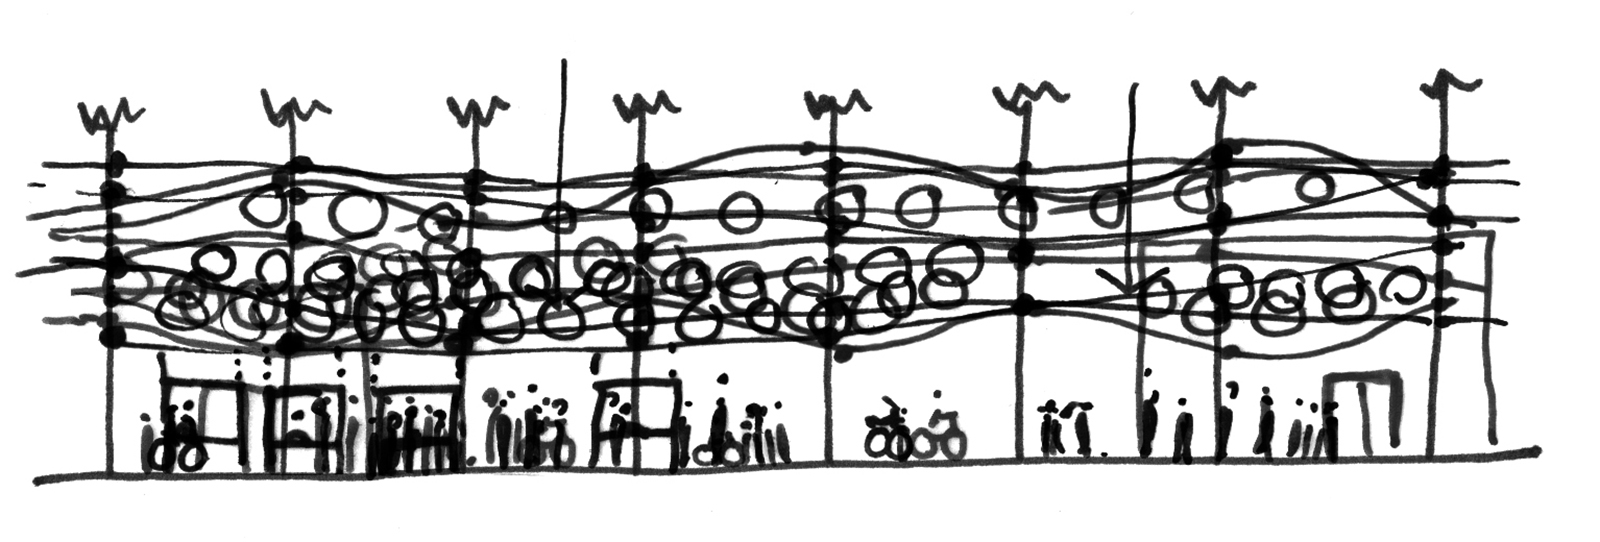 Long concept section sketch showing the flexible relationship between the PEP shade canopy with the palm trees and students